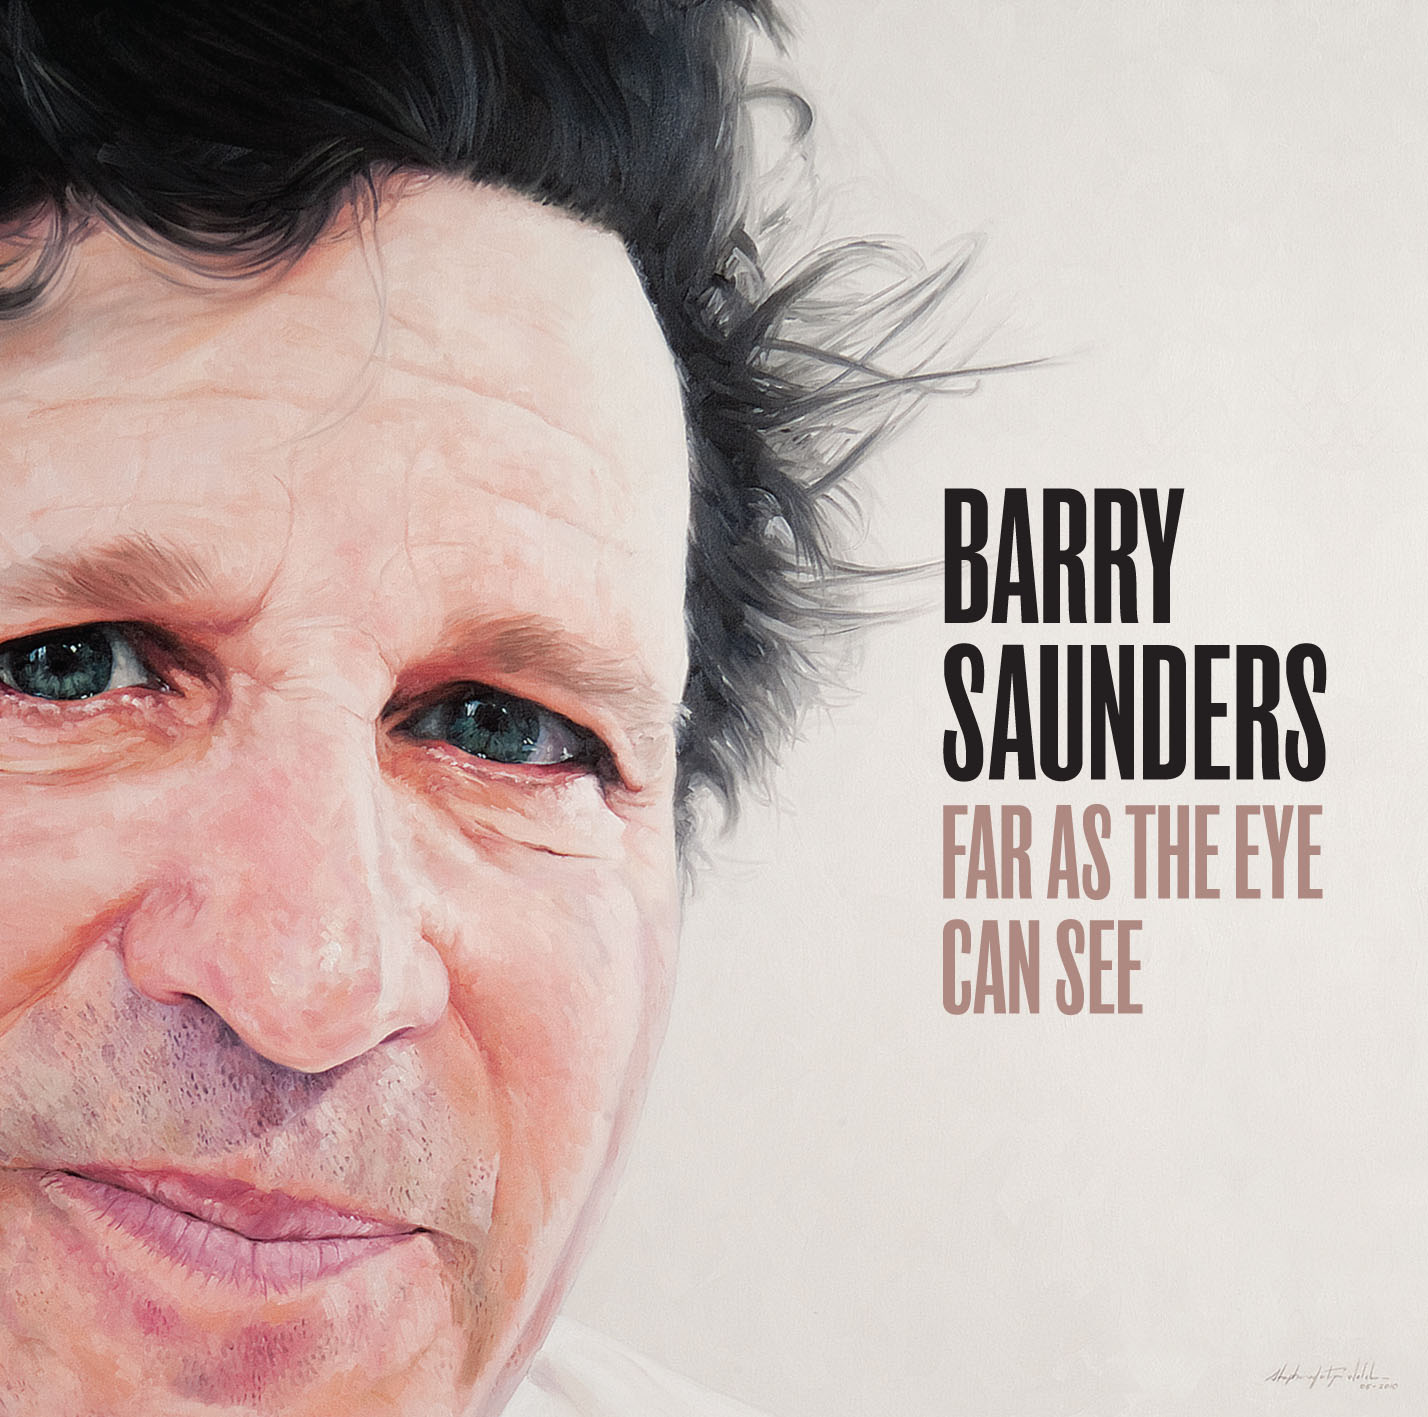 BARRY SAUNDERS - AS FAR AS THE EYE CAN SEE